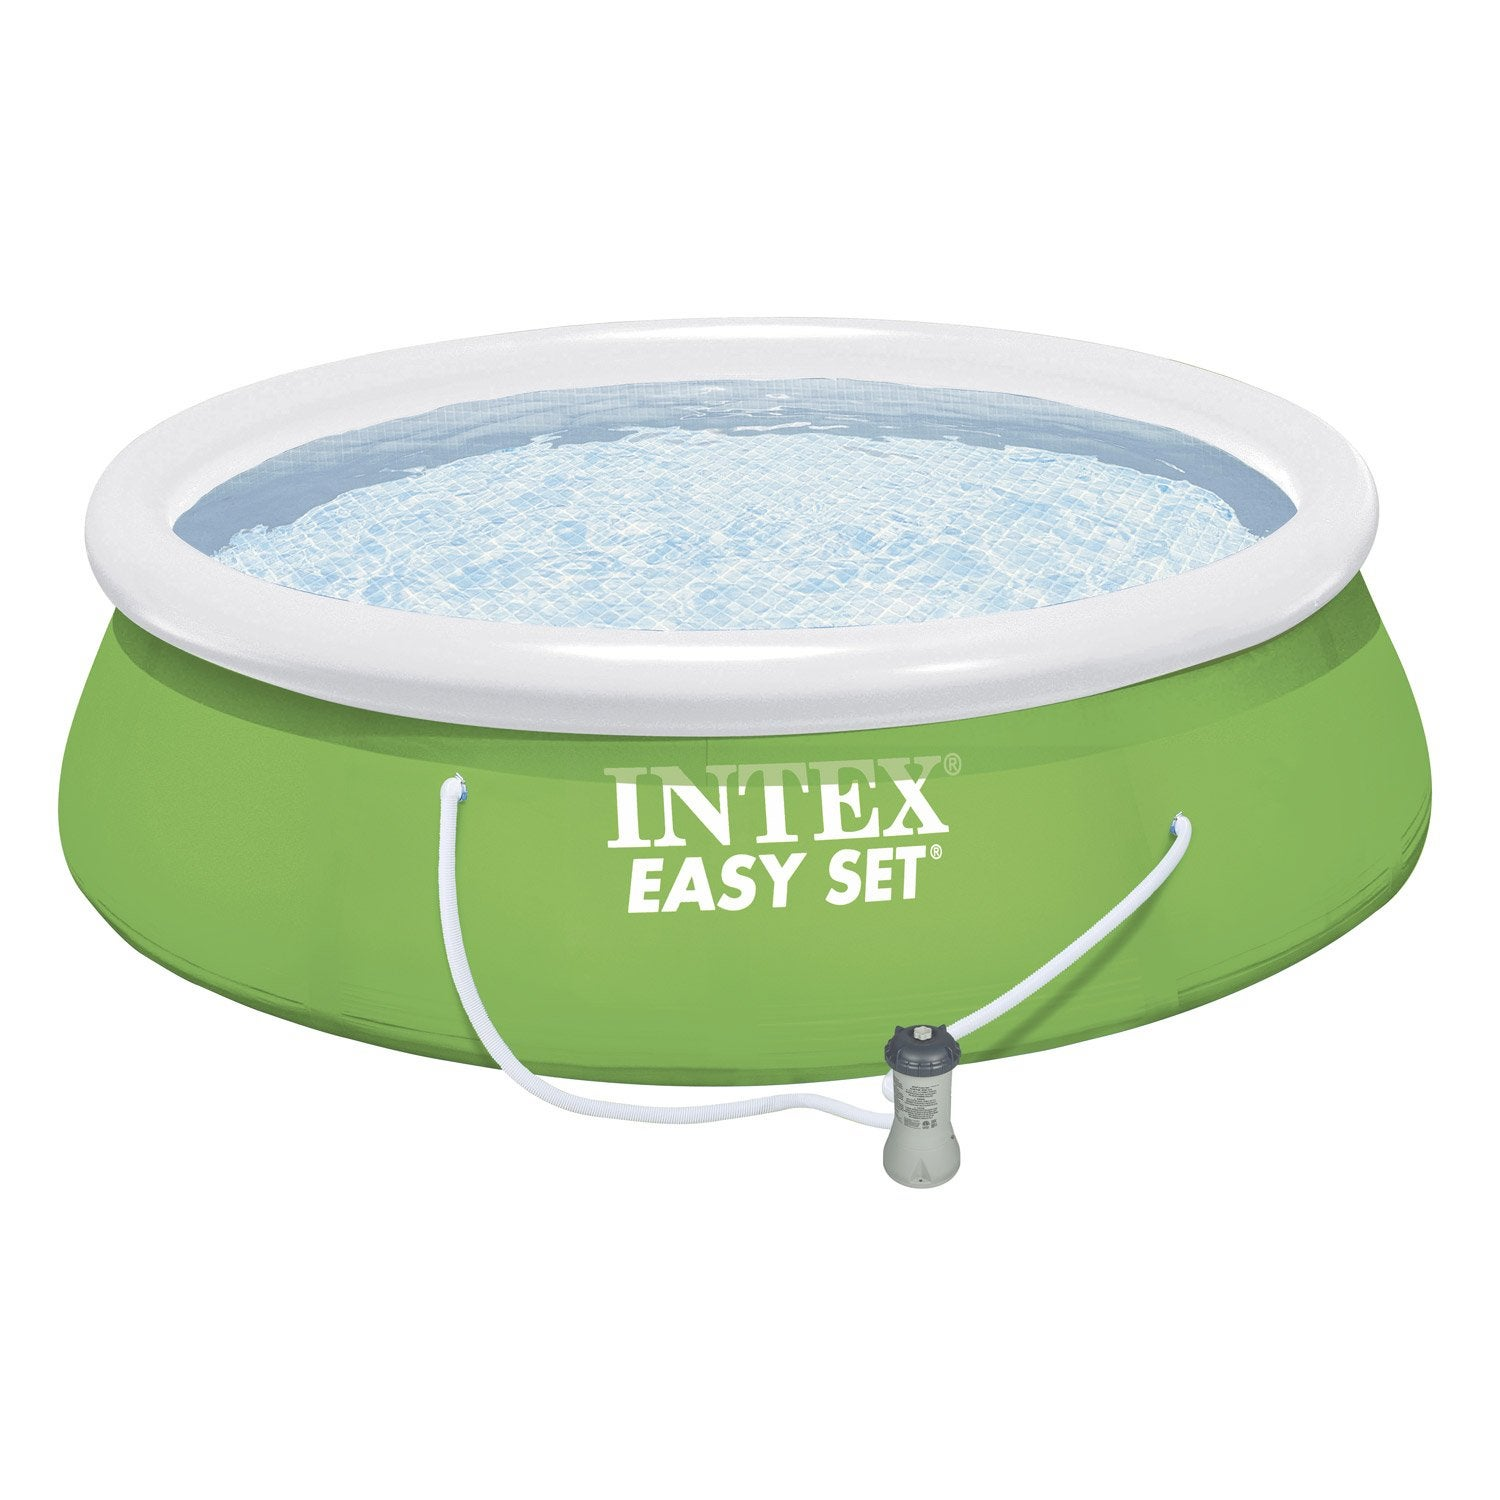 Piscine hors sol autoportante gonflable easy set intex for Piscine hors sol intex ronde